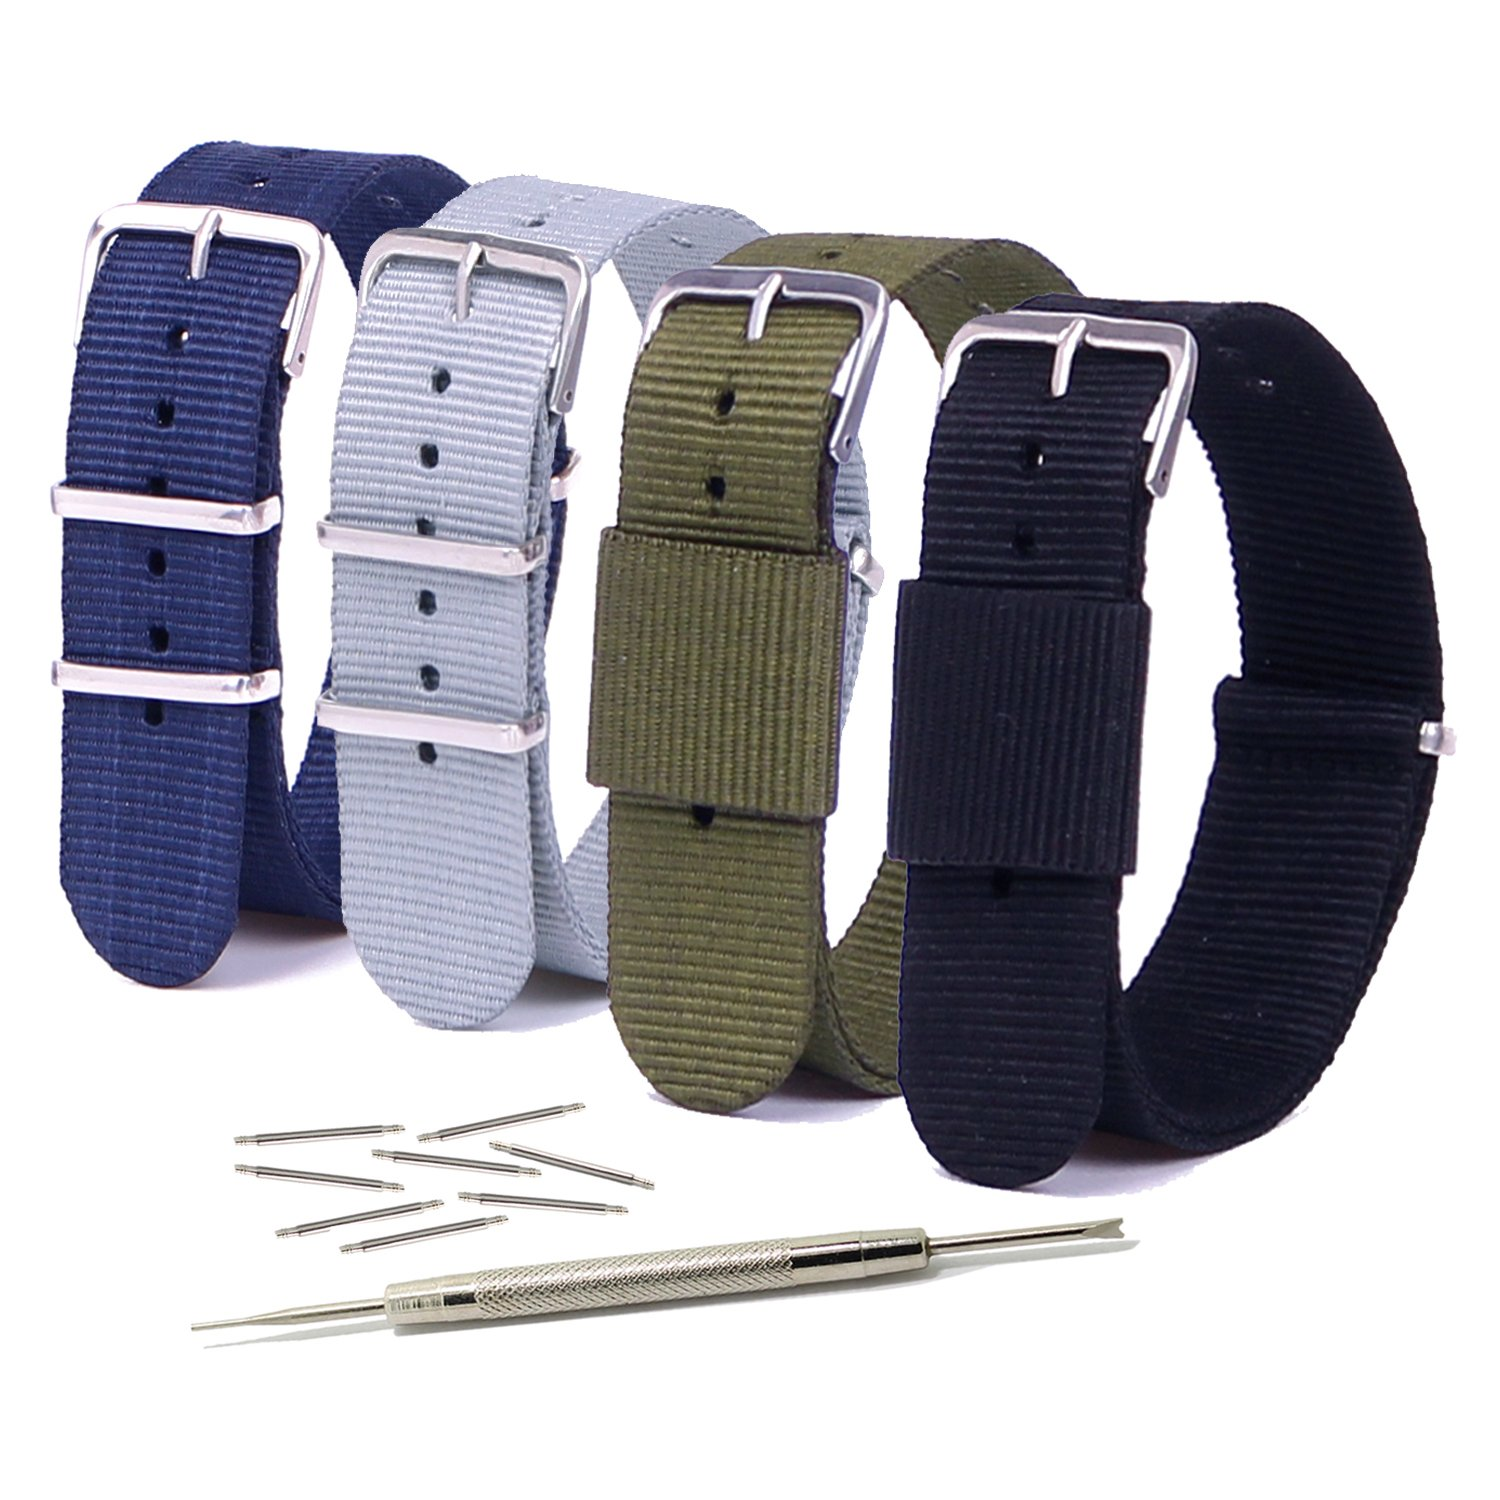 mens watch bands amazon com vetoo 20mm watch bands nato nylon replacement watch strap metal buckle for men or women pack of 4